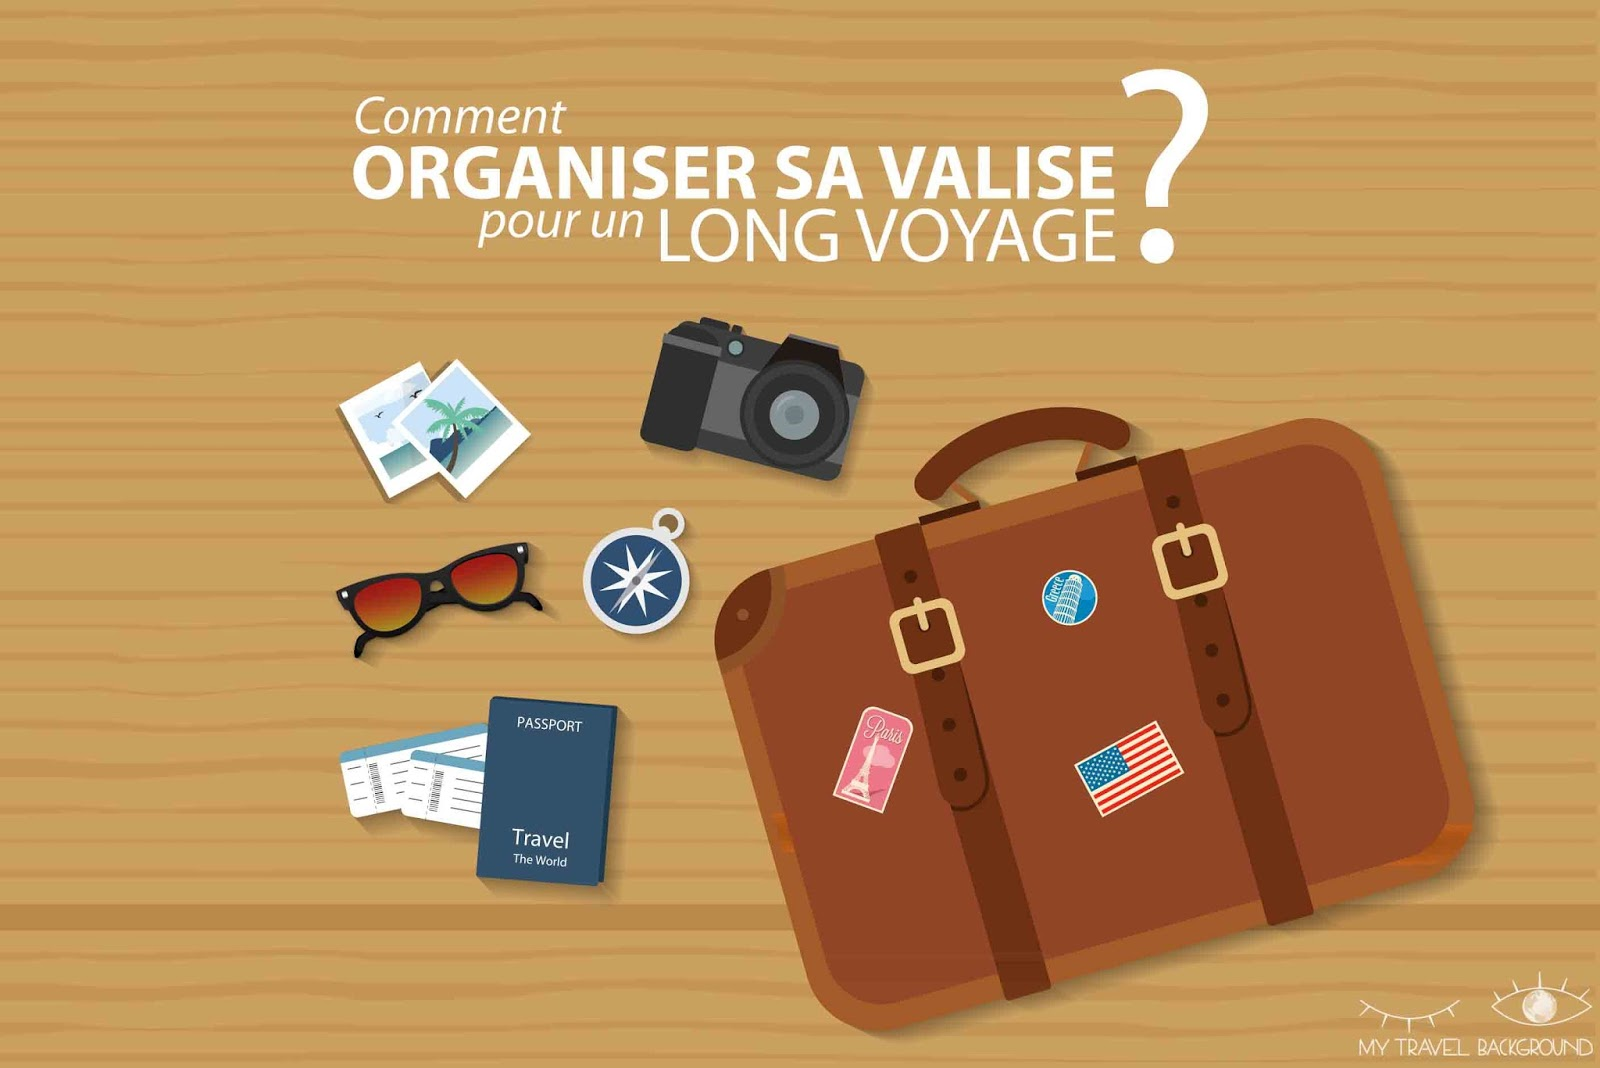 My Travel Background : Comment organiser sa valise pour un long voyage?